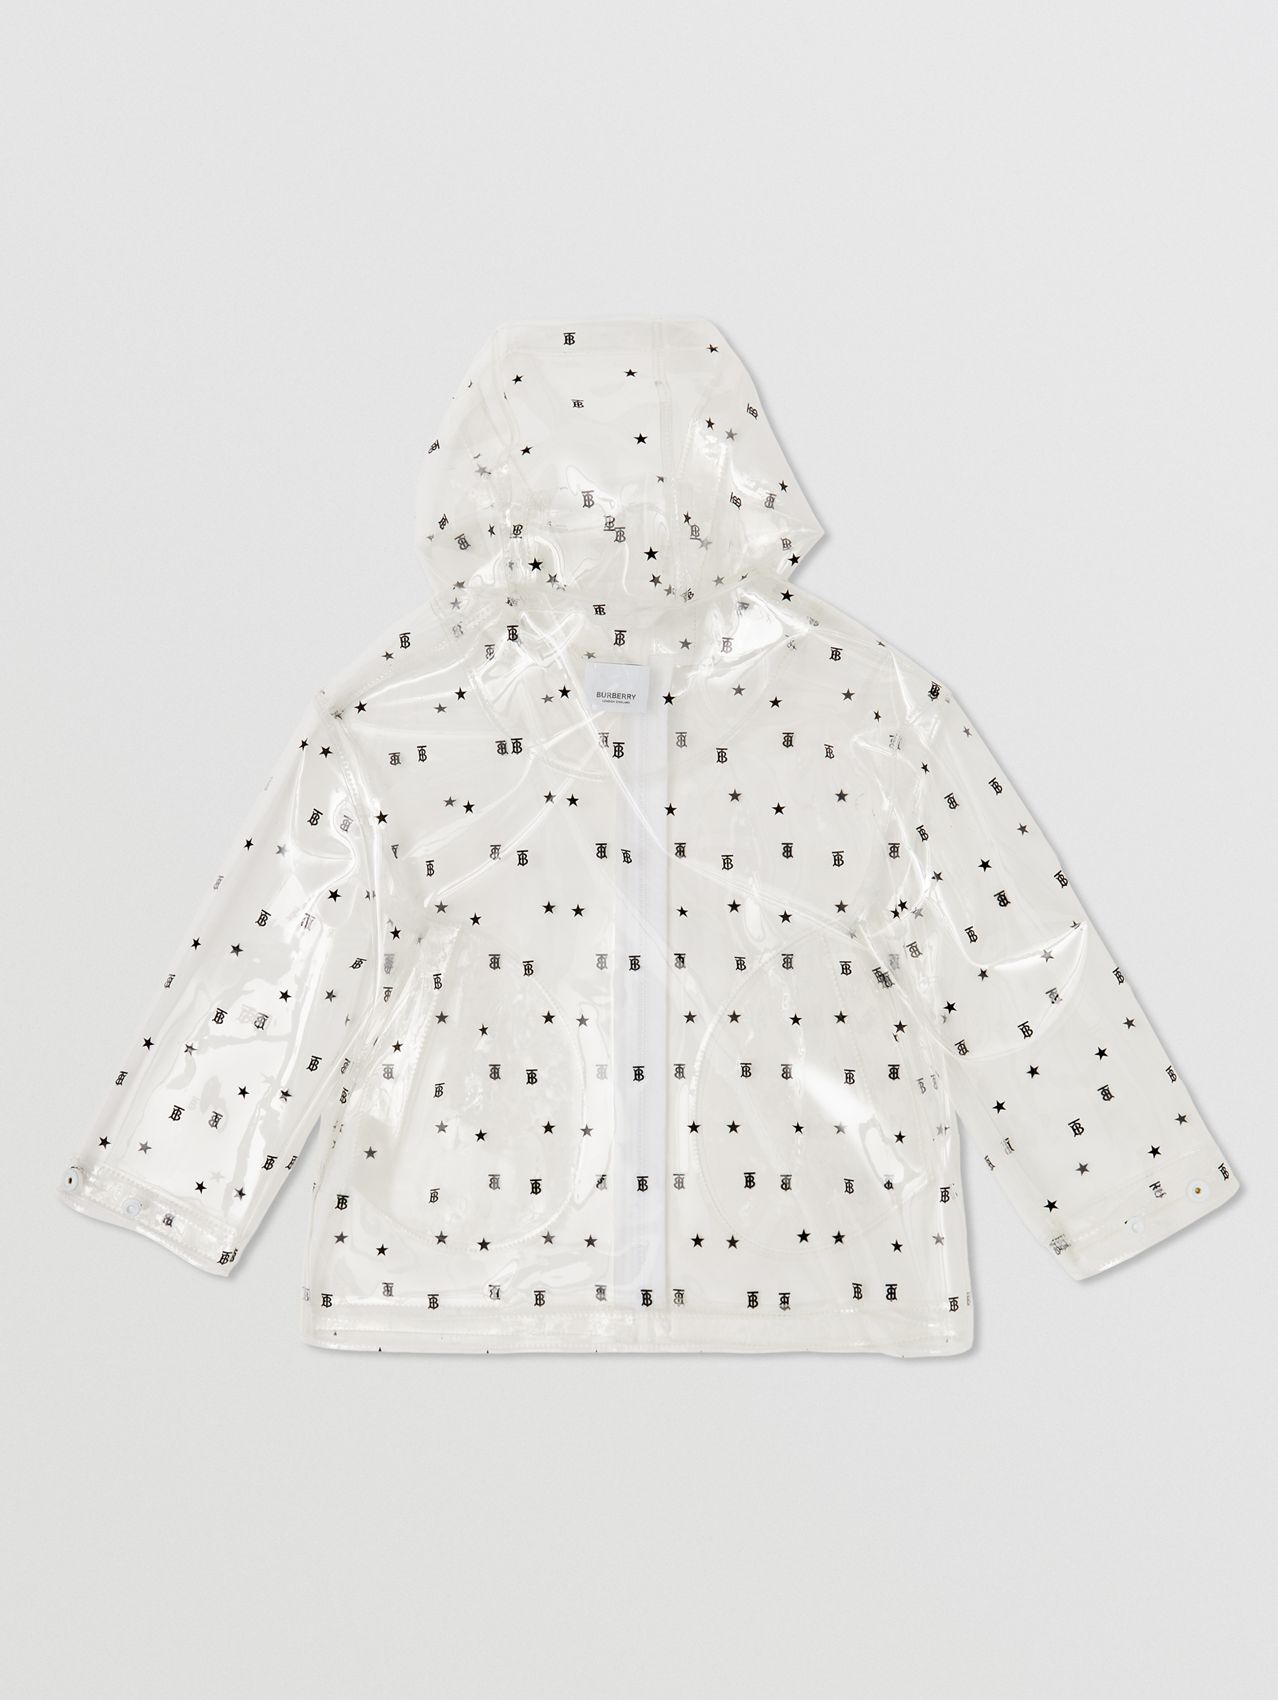 Star and Monogram Motif Transparent Hooded Coat in Black